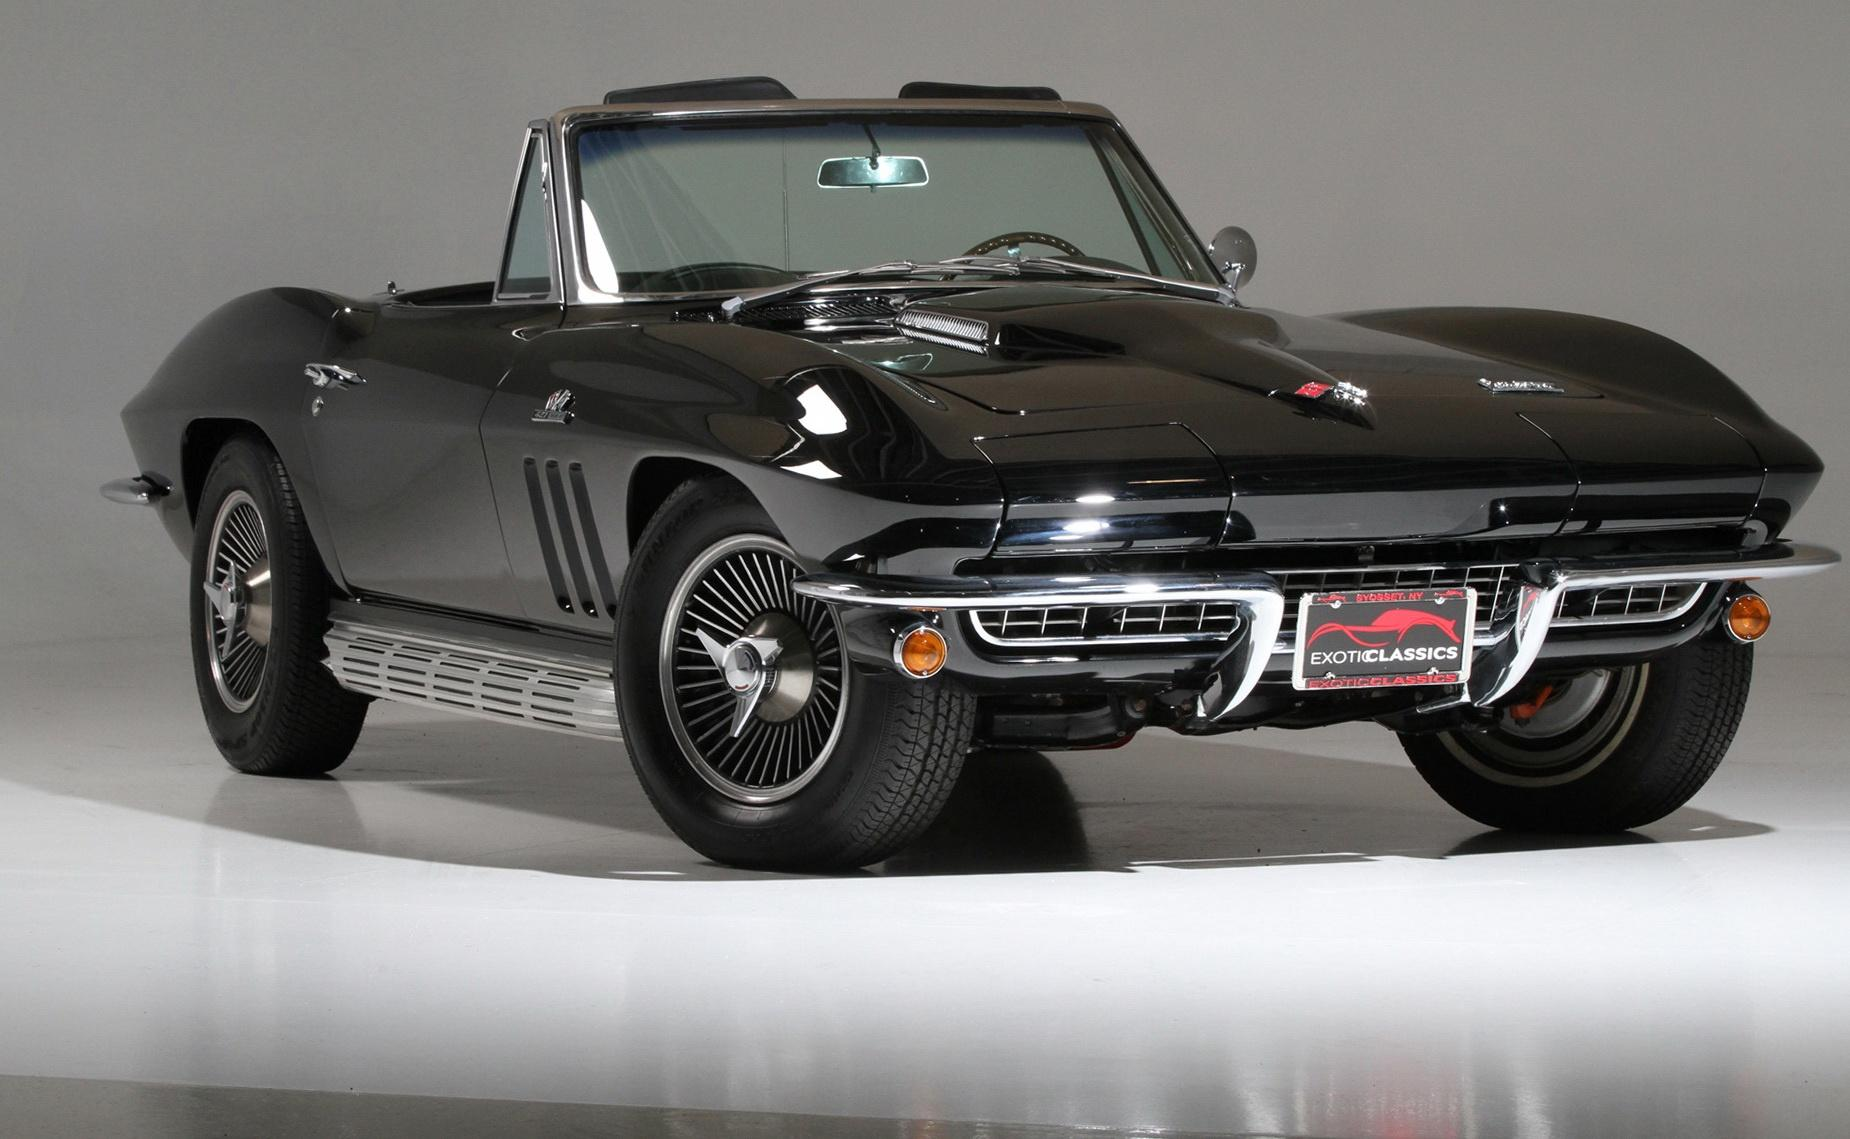 Used Cars Long Island >> 1966 Chevrolet Corvette Convertible 427 - Champion Motors International l Exotic Classic Car ...